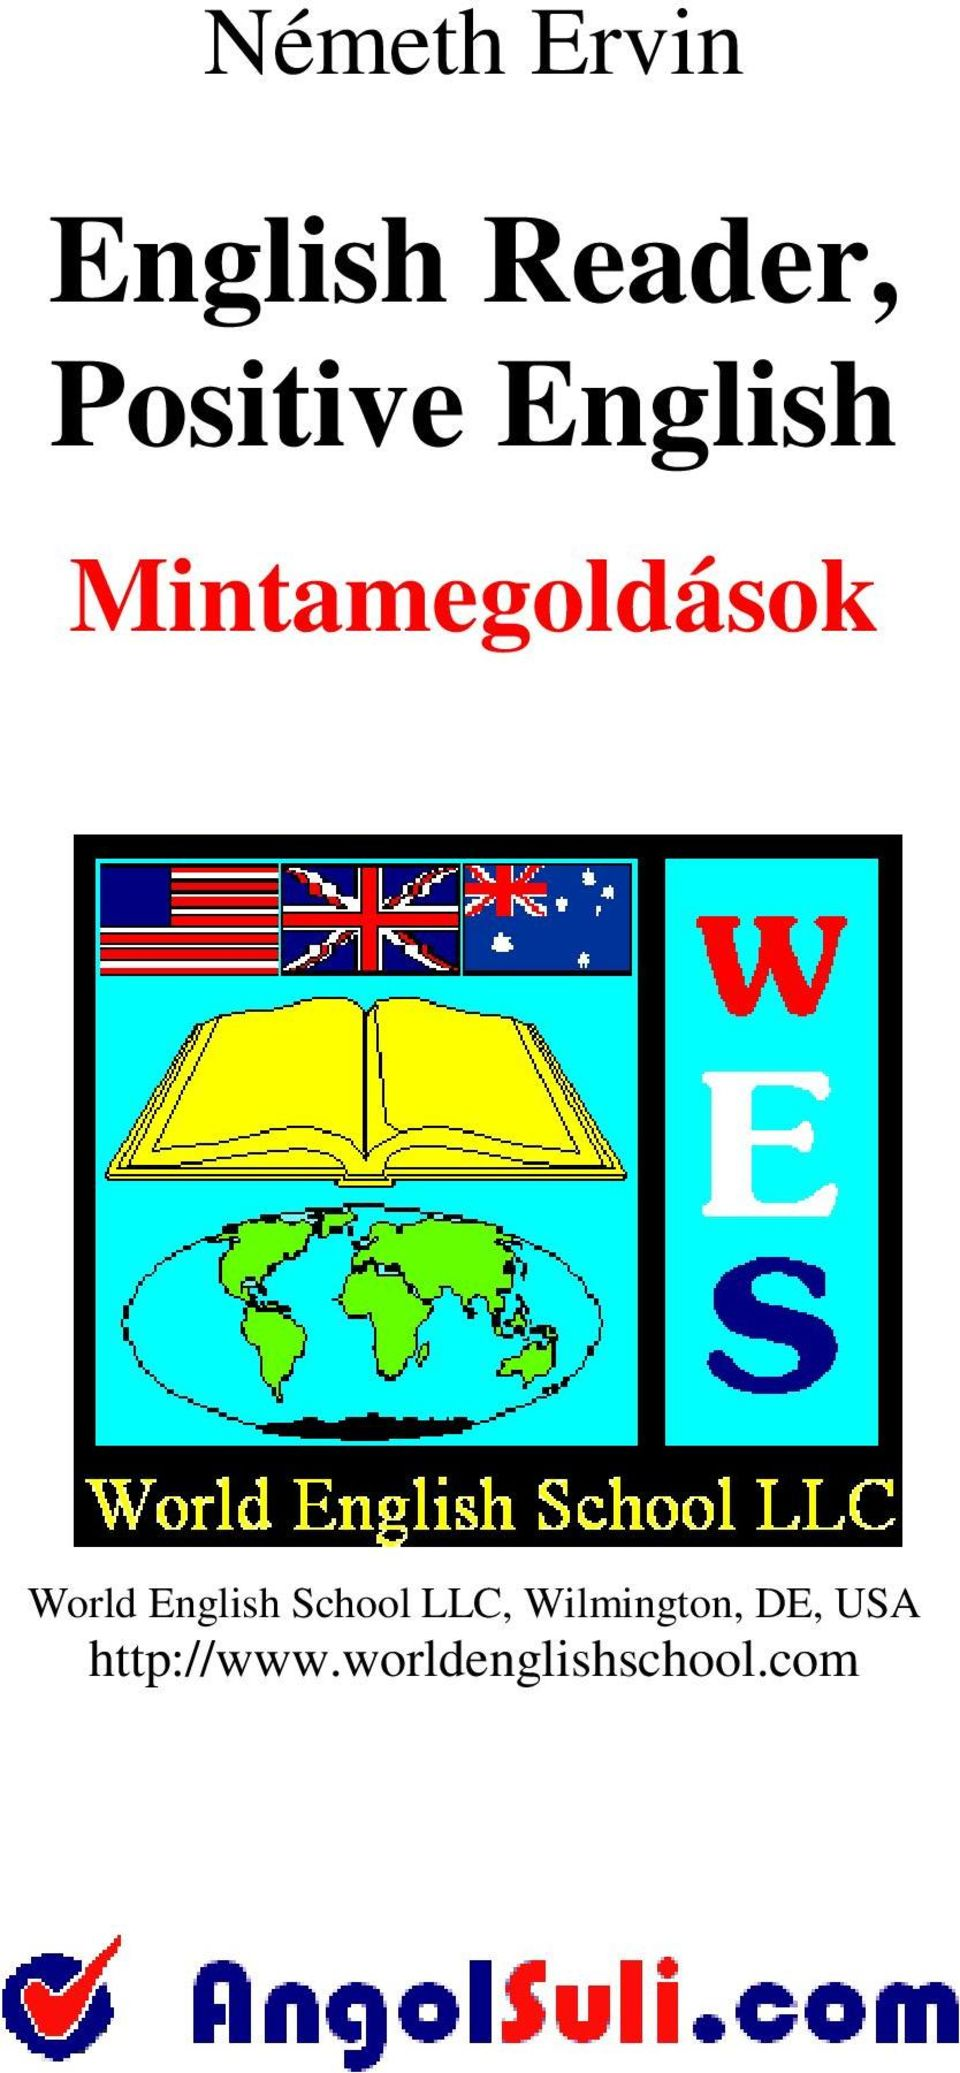 World English School LLC,